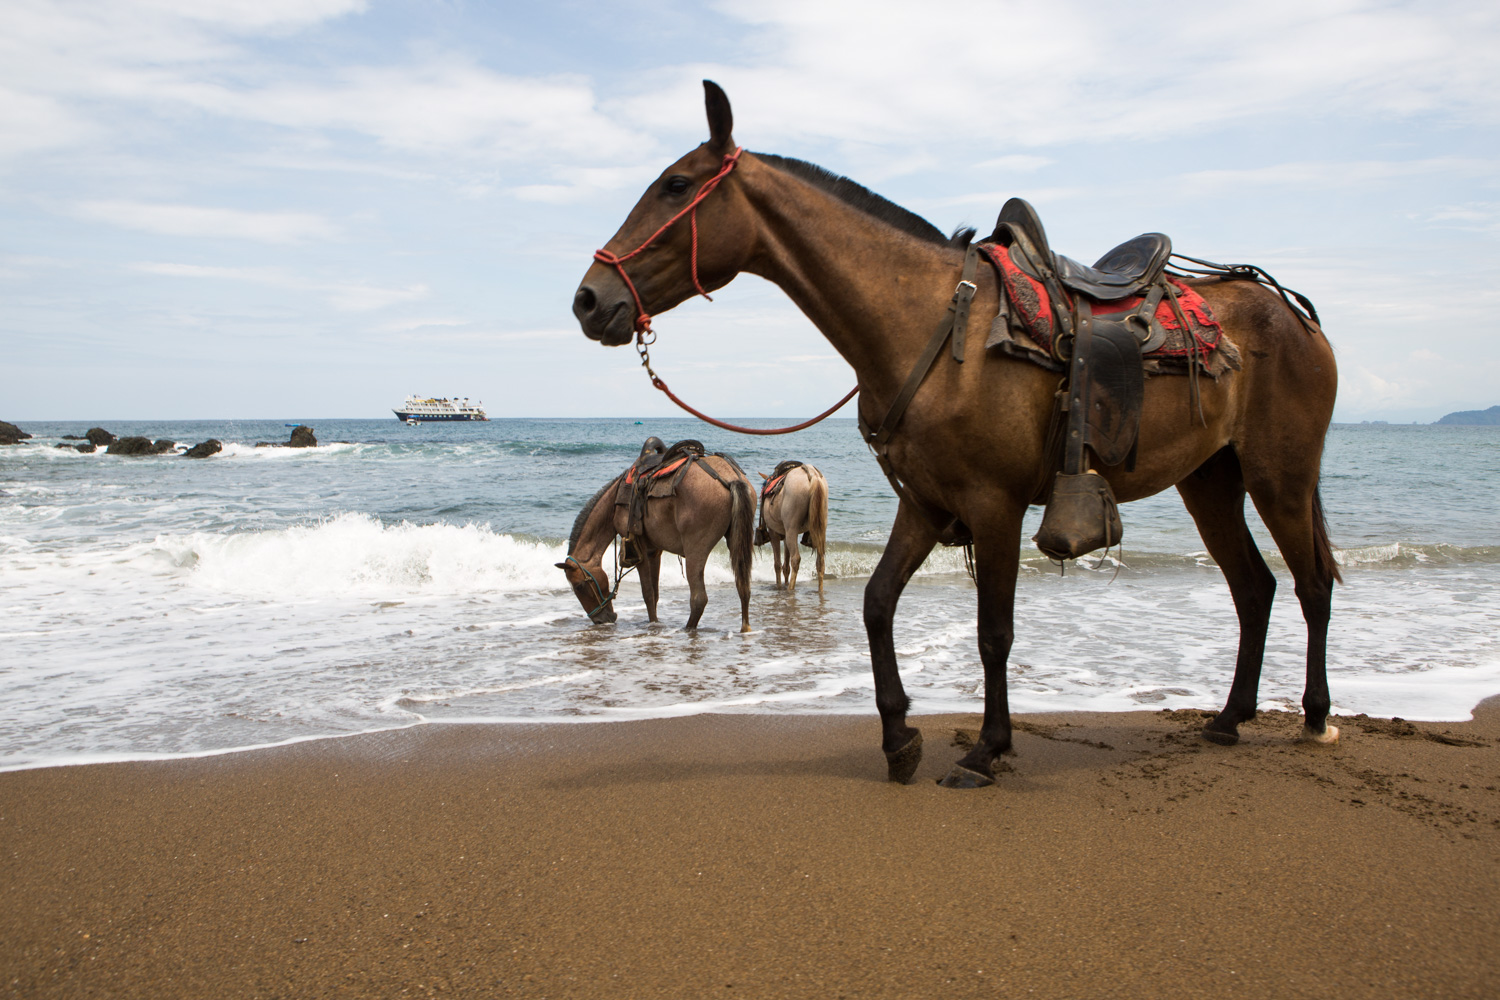 In Caletas Reserve, Osa Peninsula, several horses stand on the sandy beach and in the water while an expedition vessel anchors nearby.